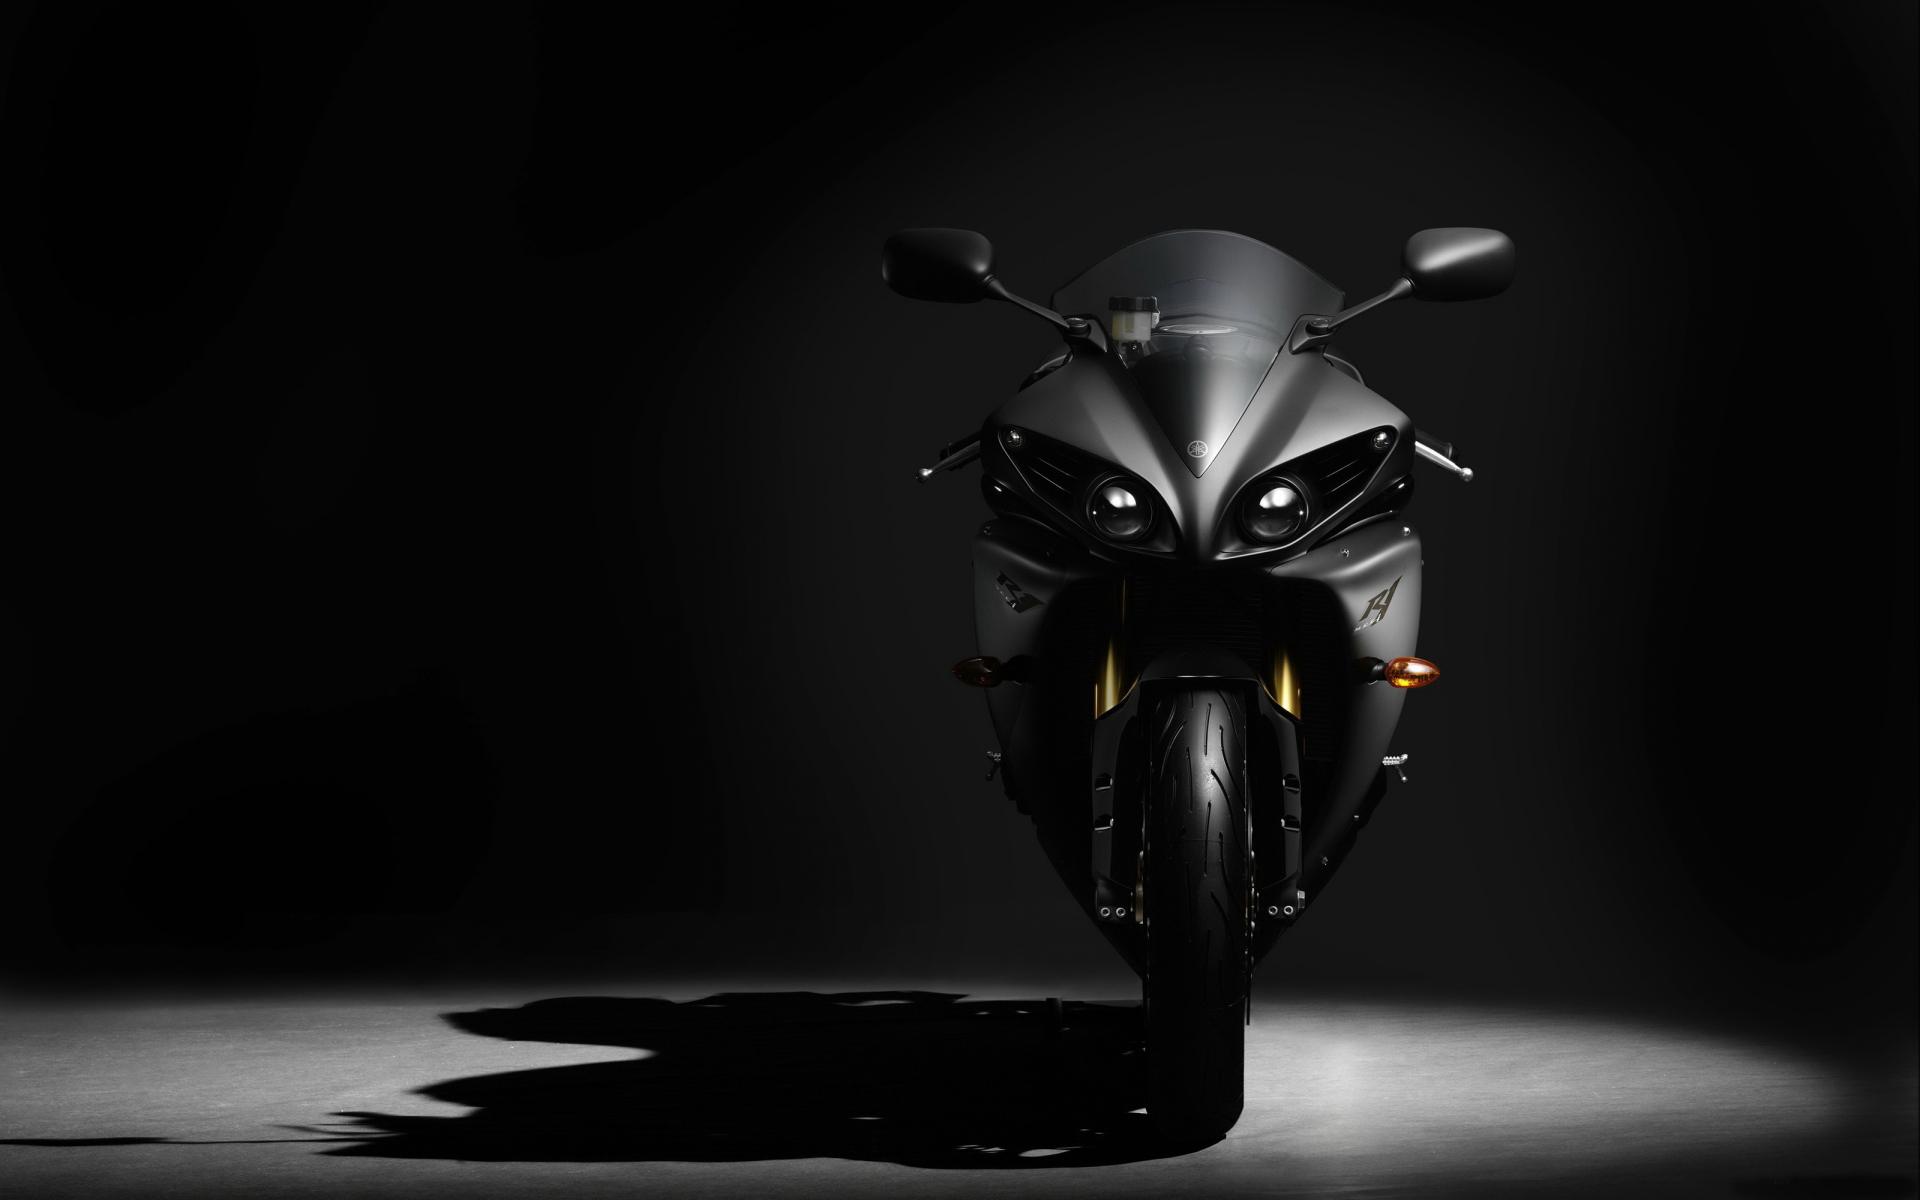 Black Bike Backgrounds